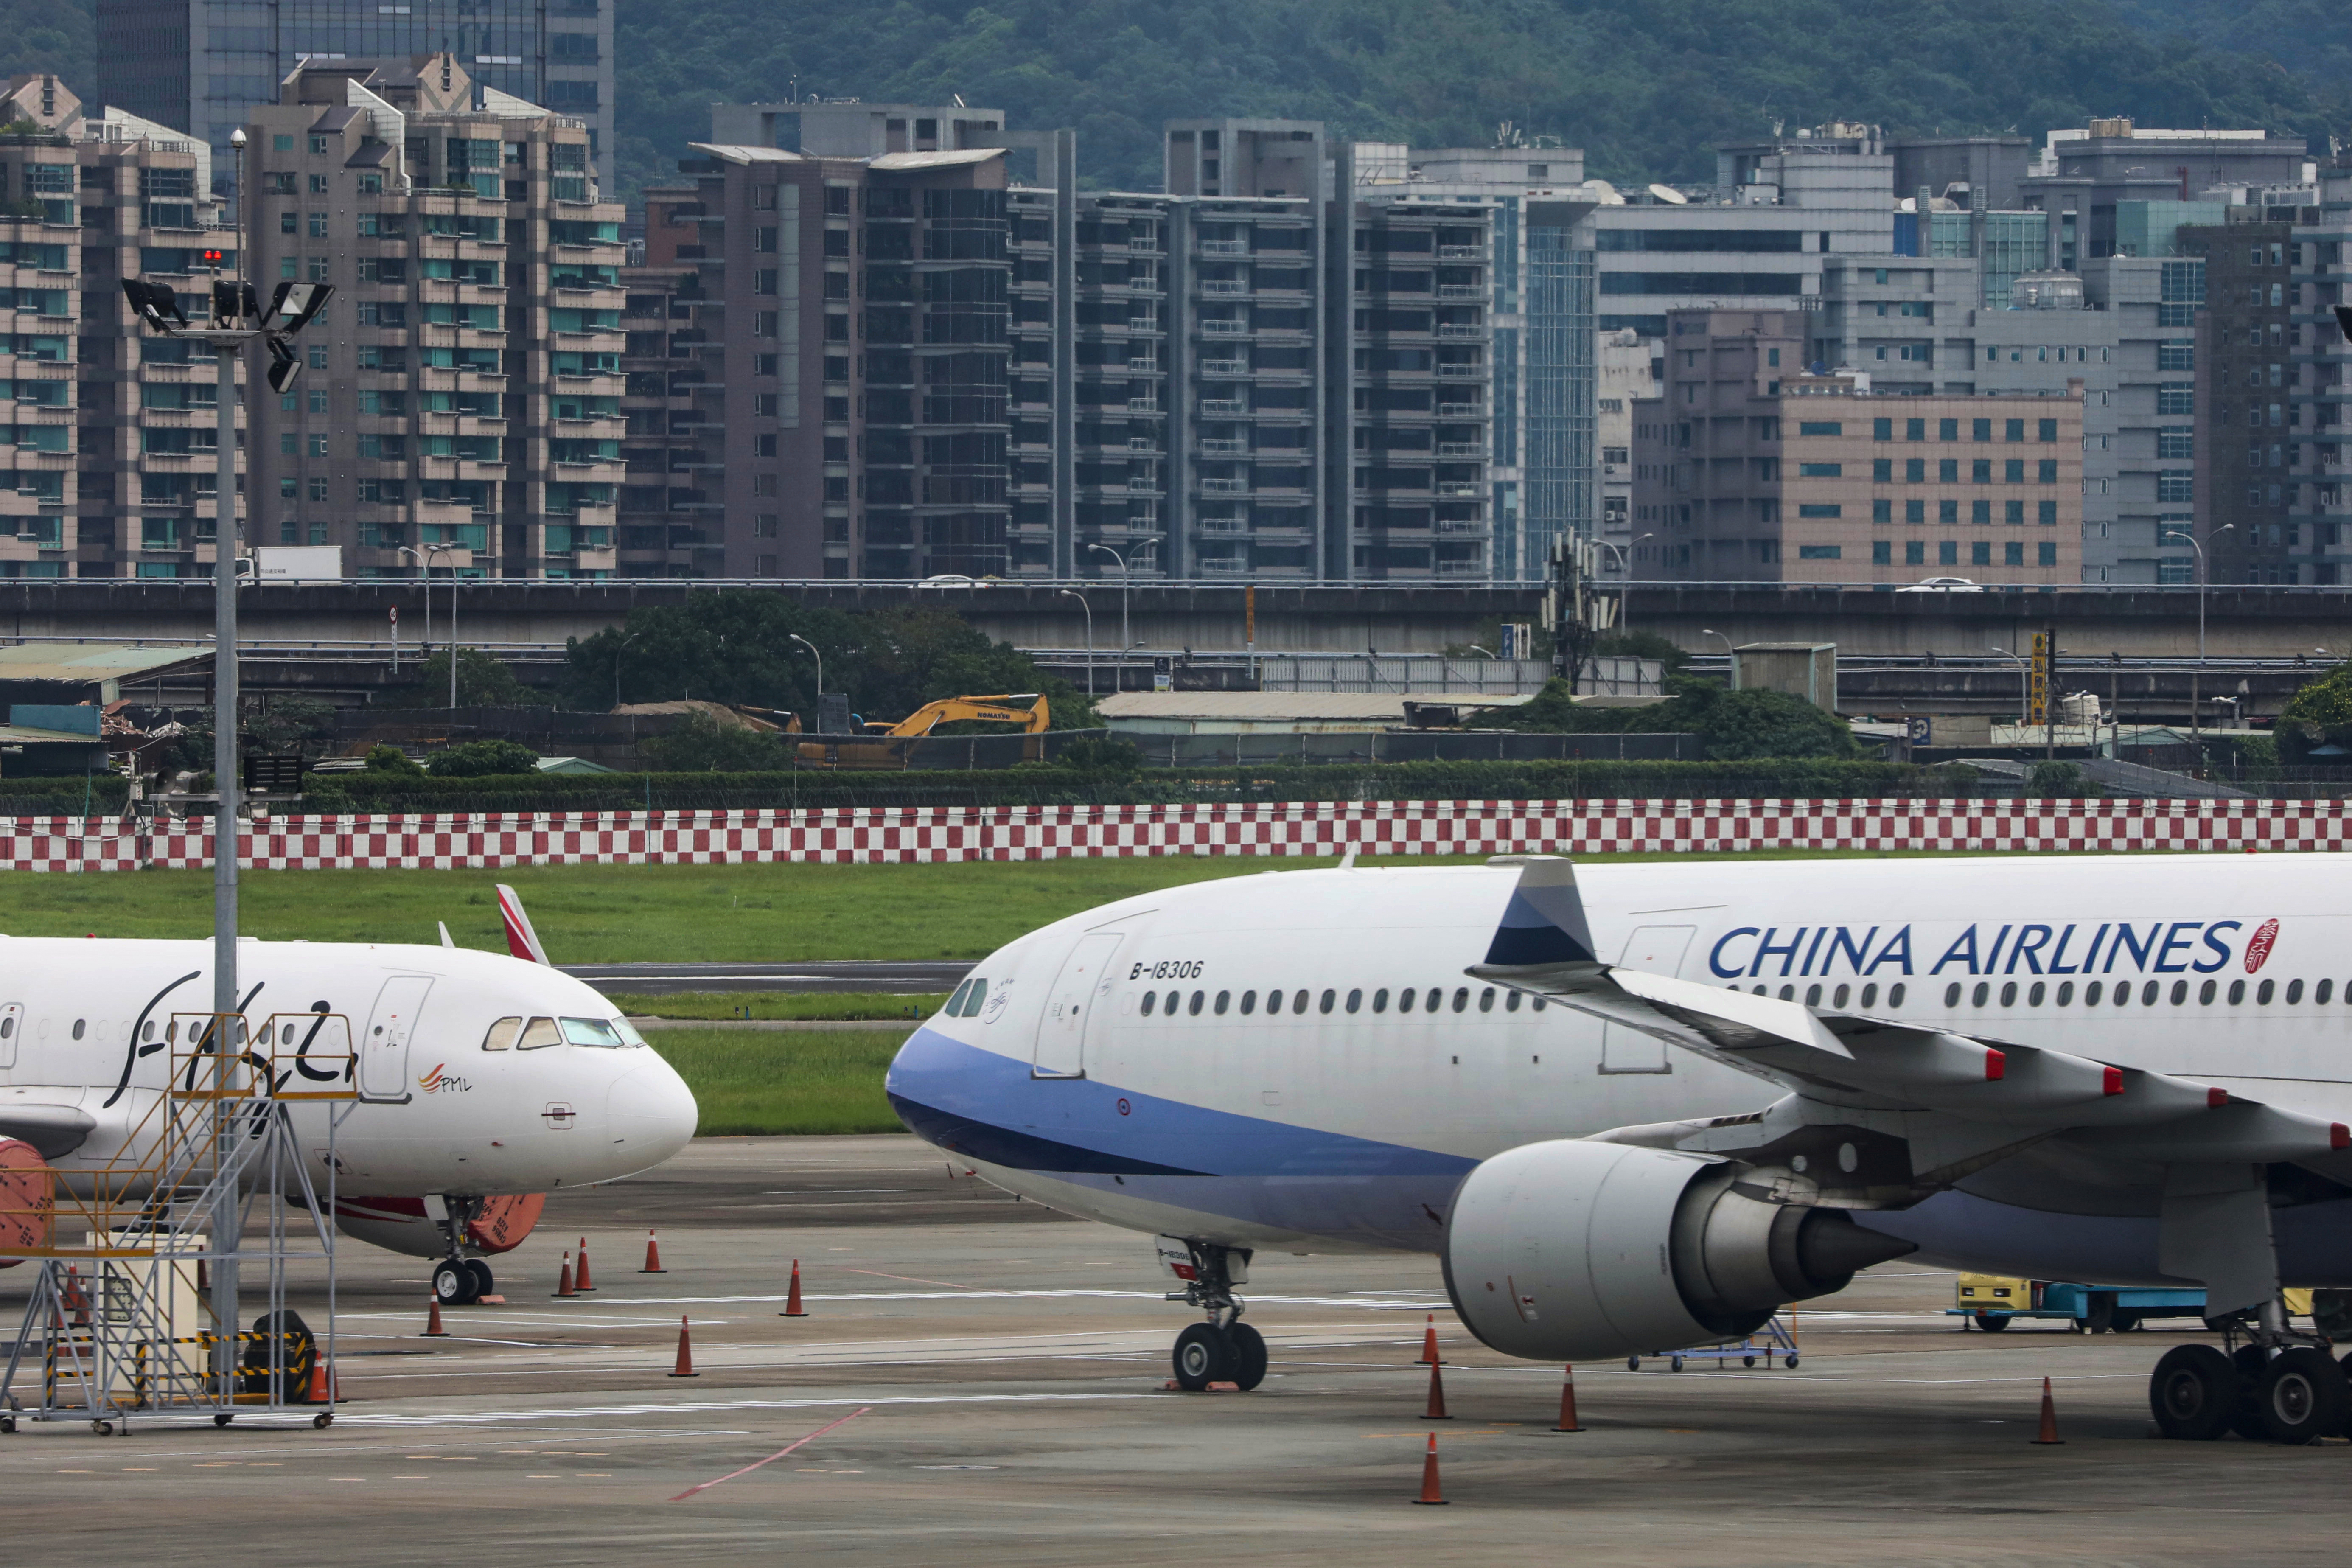 Passenger jets of Taiwan's China Airlines at Taipei Songshan Airport in Taipei, Taiwan, June 8, 2020.REUTERS/Ann Wang